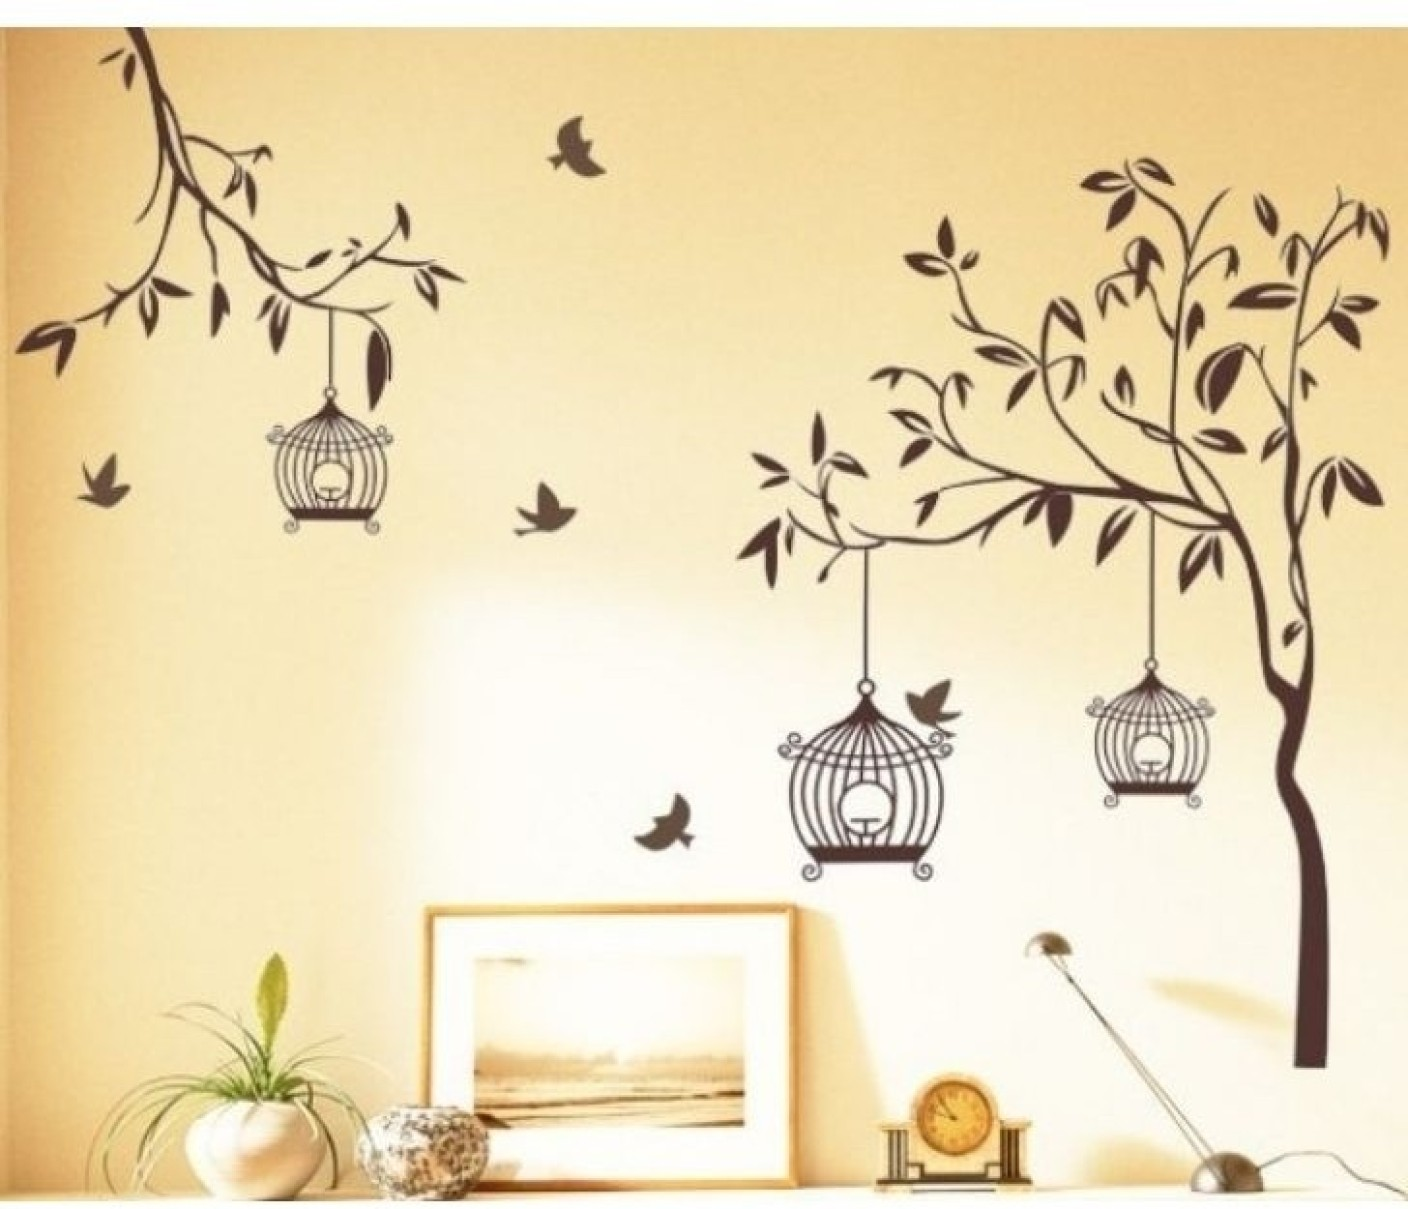 Aquire small pvc vinyl sticker price in india buy aquire for Wallpaper on walls home decor furnishings